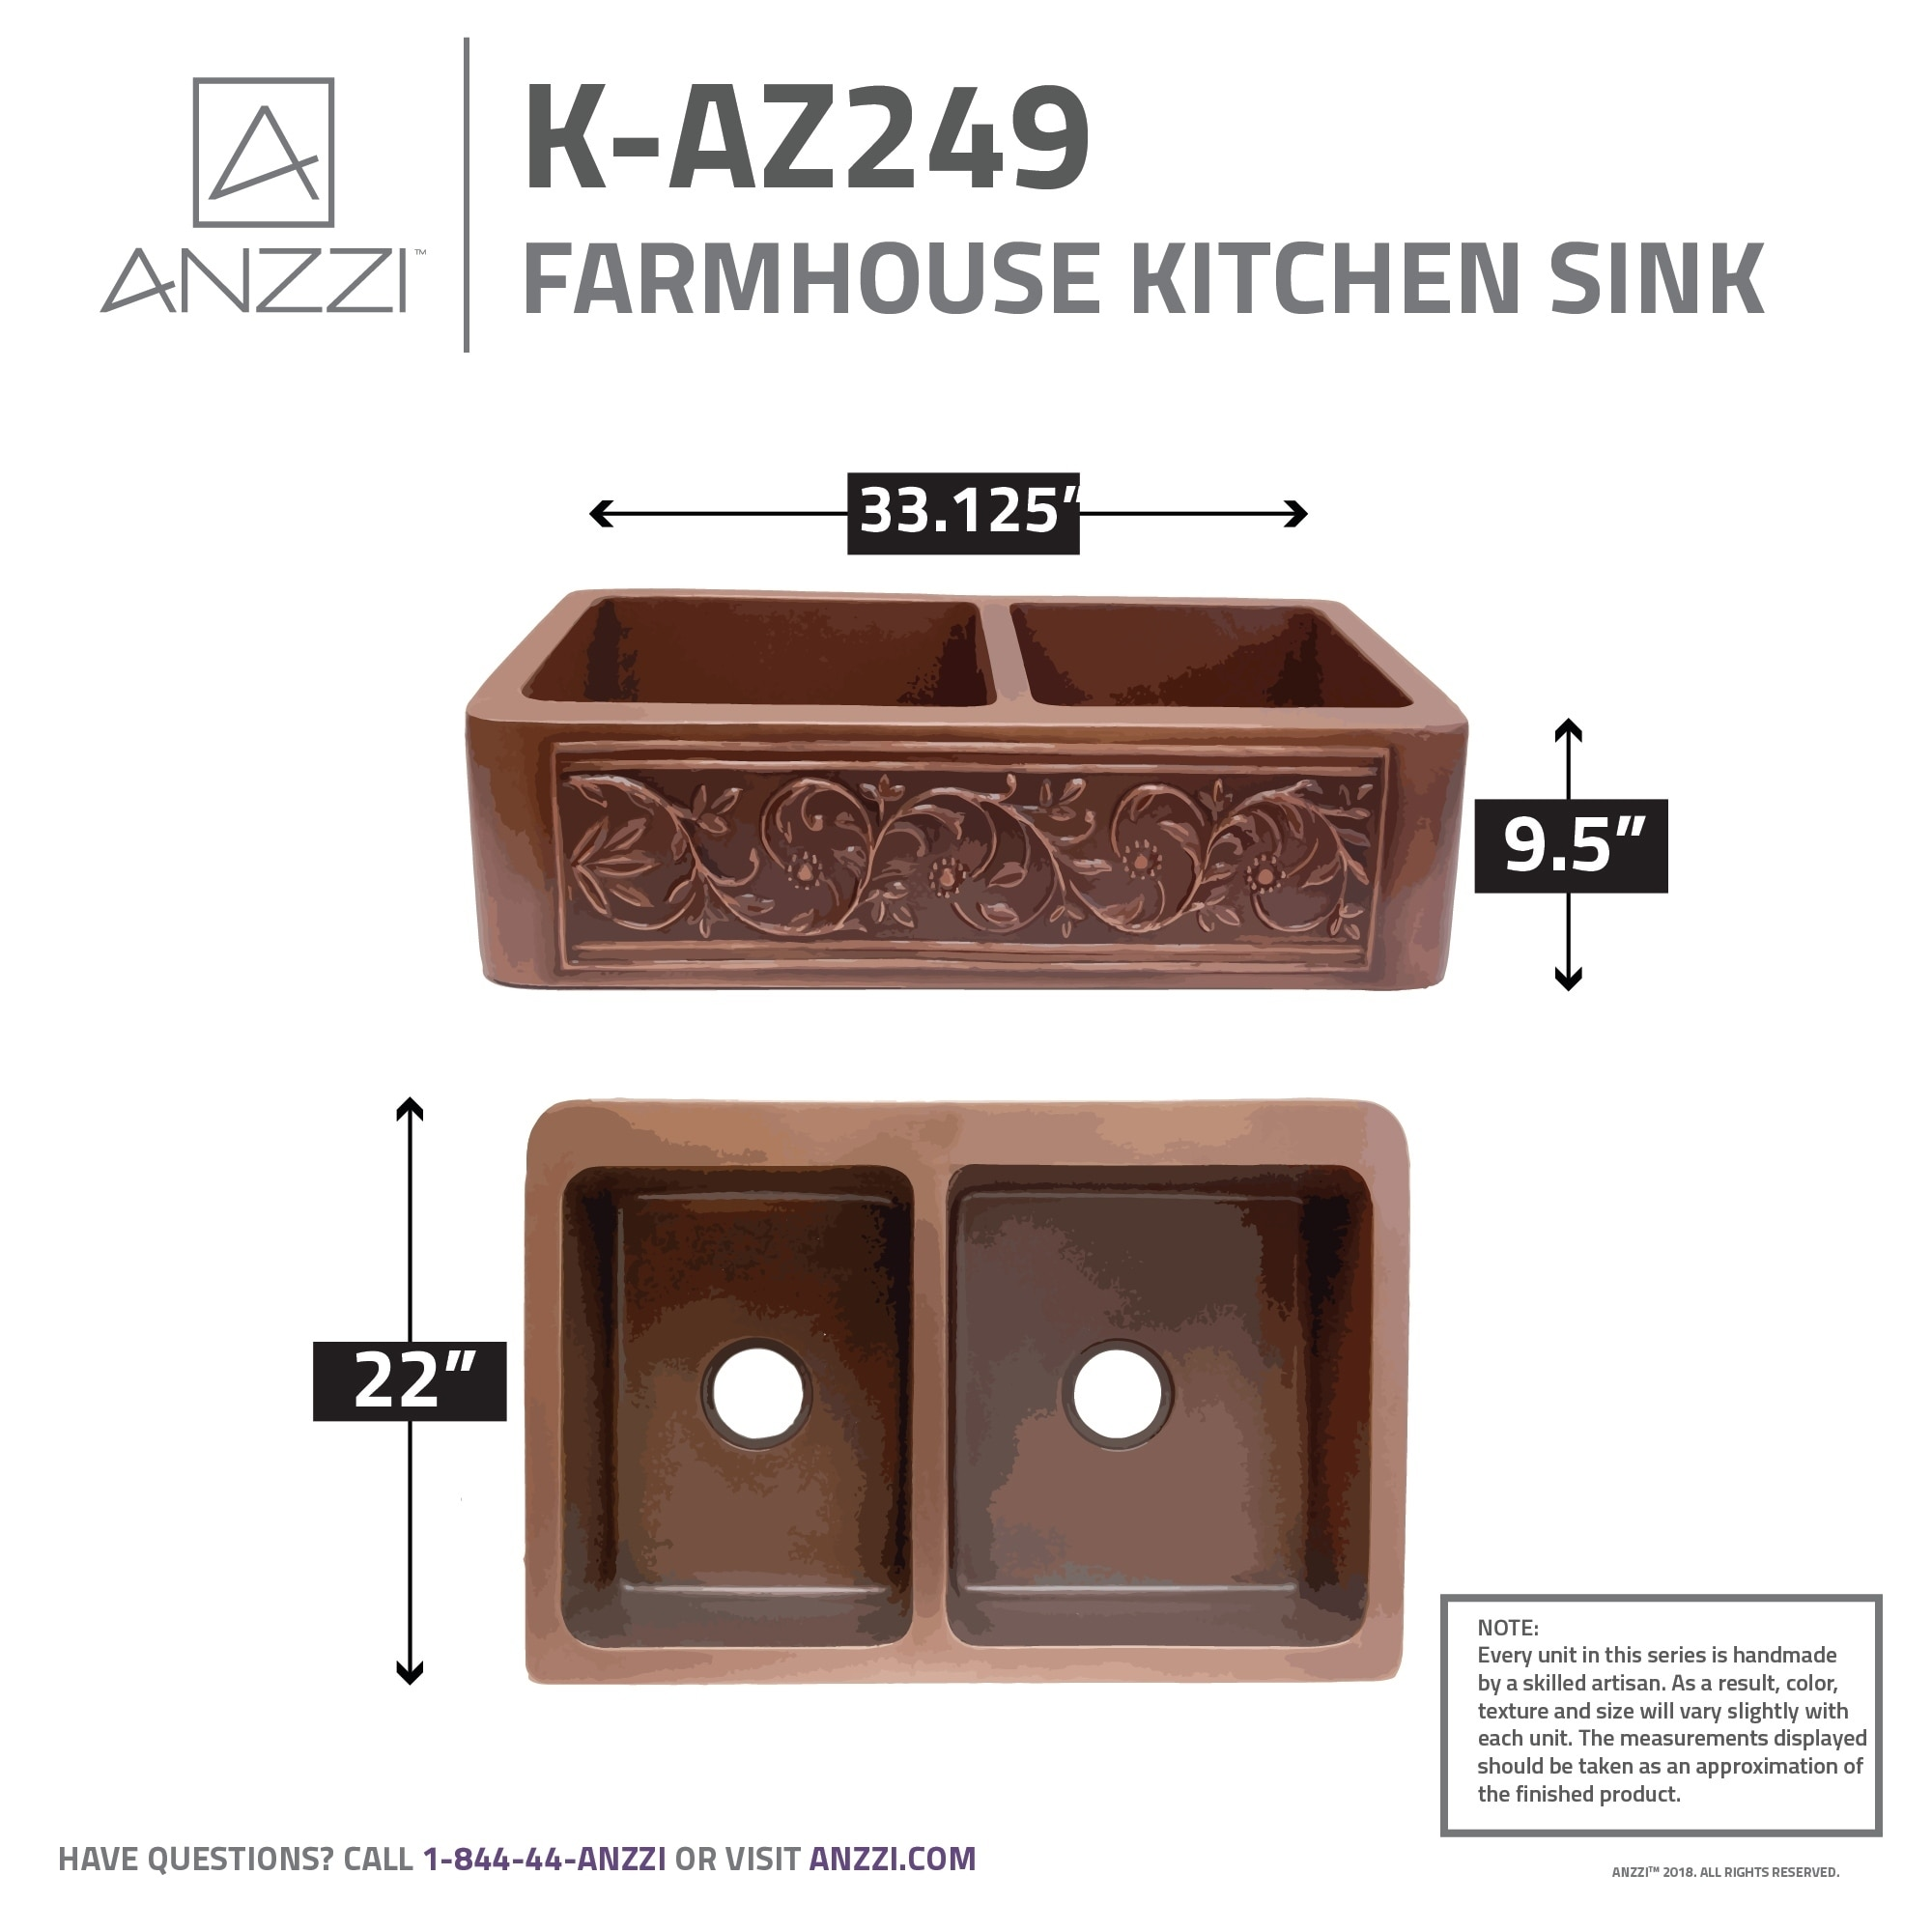 Copper Farmhouse Apron Front Kitchen Sinks on double bowl apron sinks, 25 apron front sinks, apron front farm sinks, copper farm sinks with apron, lowe's apron front sinks,